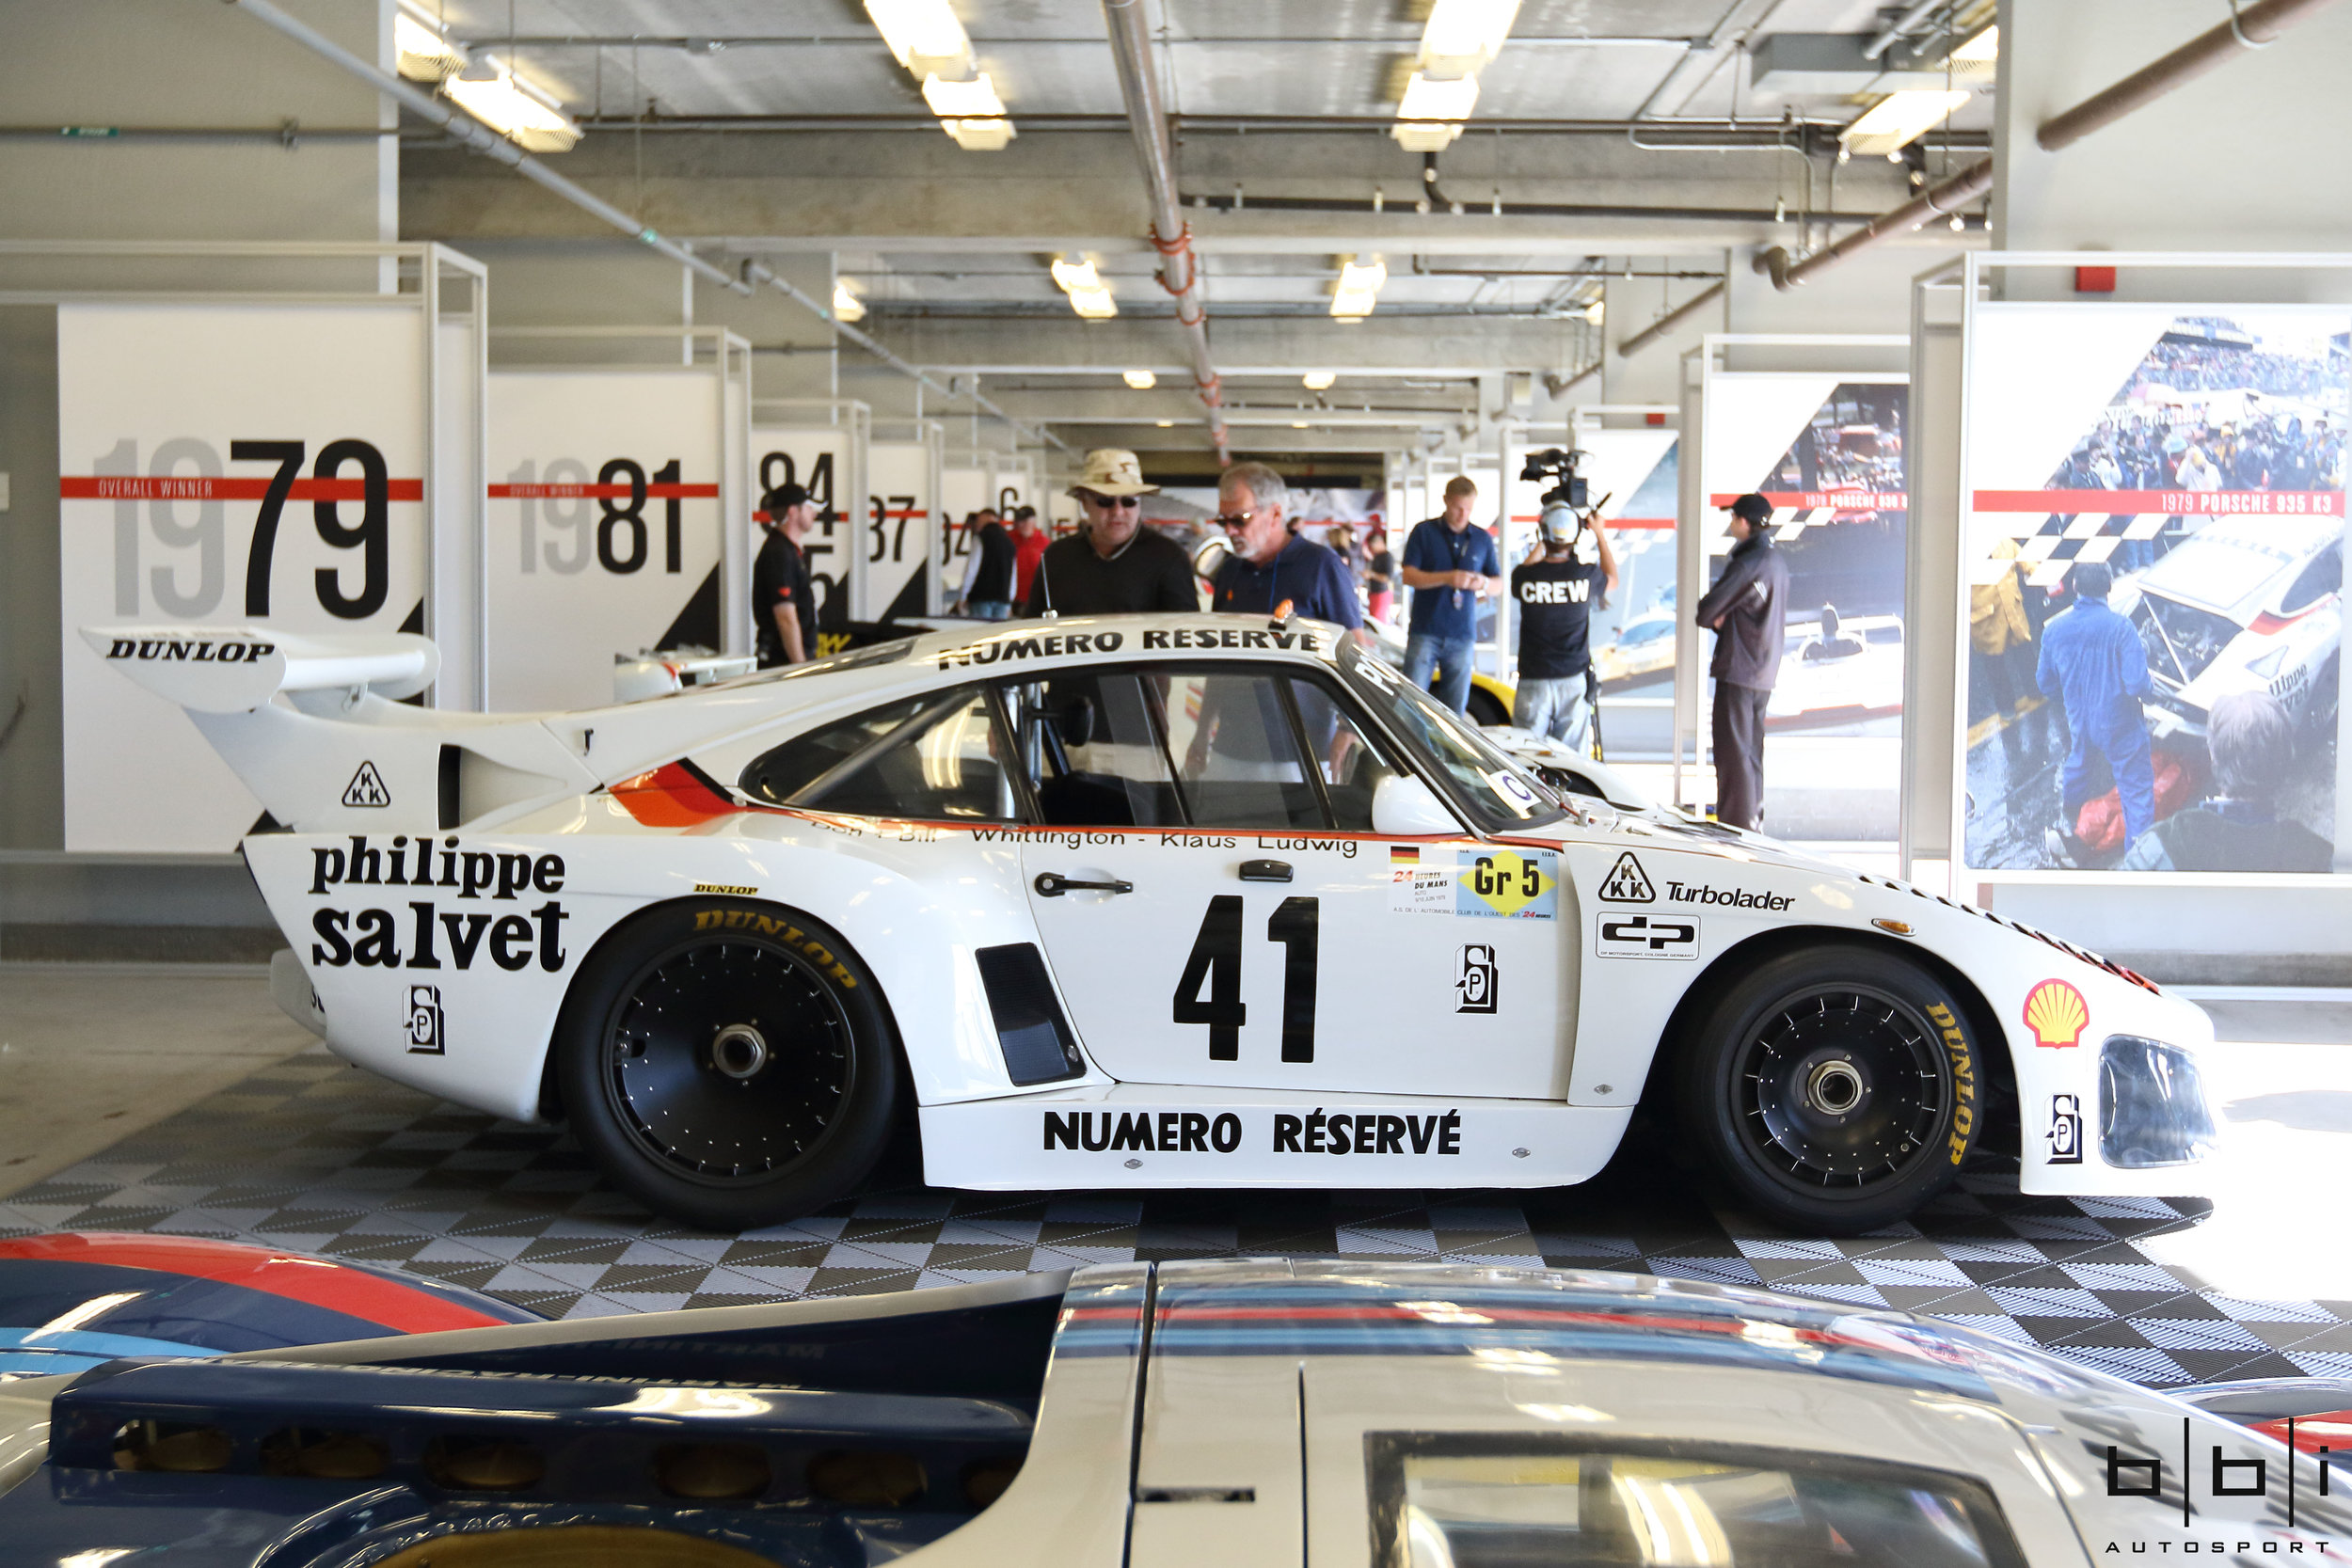 1979 Le Mans Winning #41 Porsche 935 K3 (chassis 009 00015). This car was entered at 1979 Le Mans by Don and Bill Whittington, who, along with co-driver Klaus Ludwig, drove the 700 horsepower twin-turbo monster to a glorious overall win.